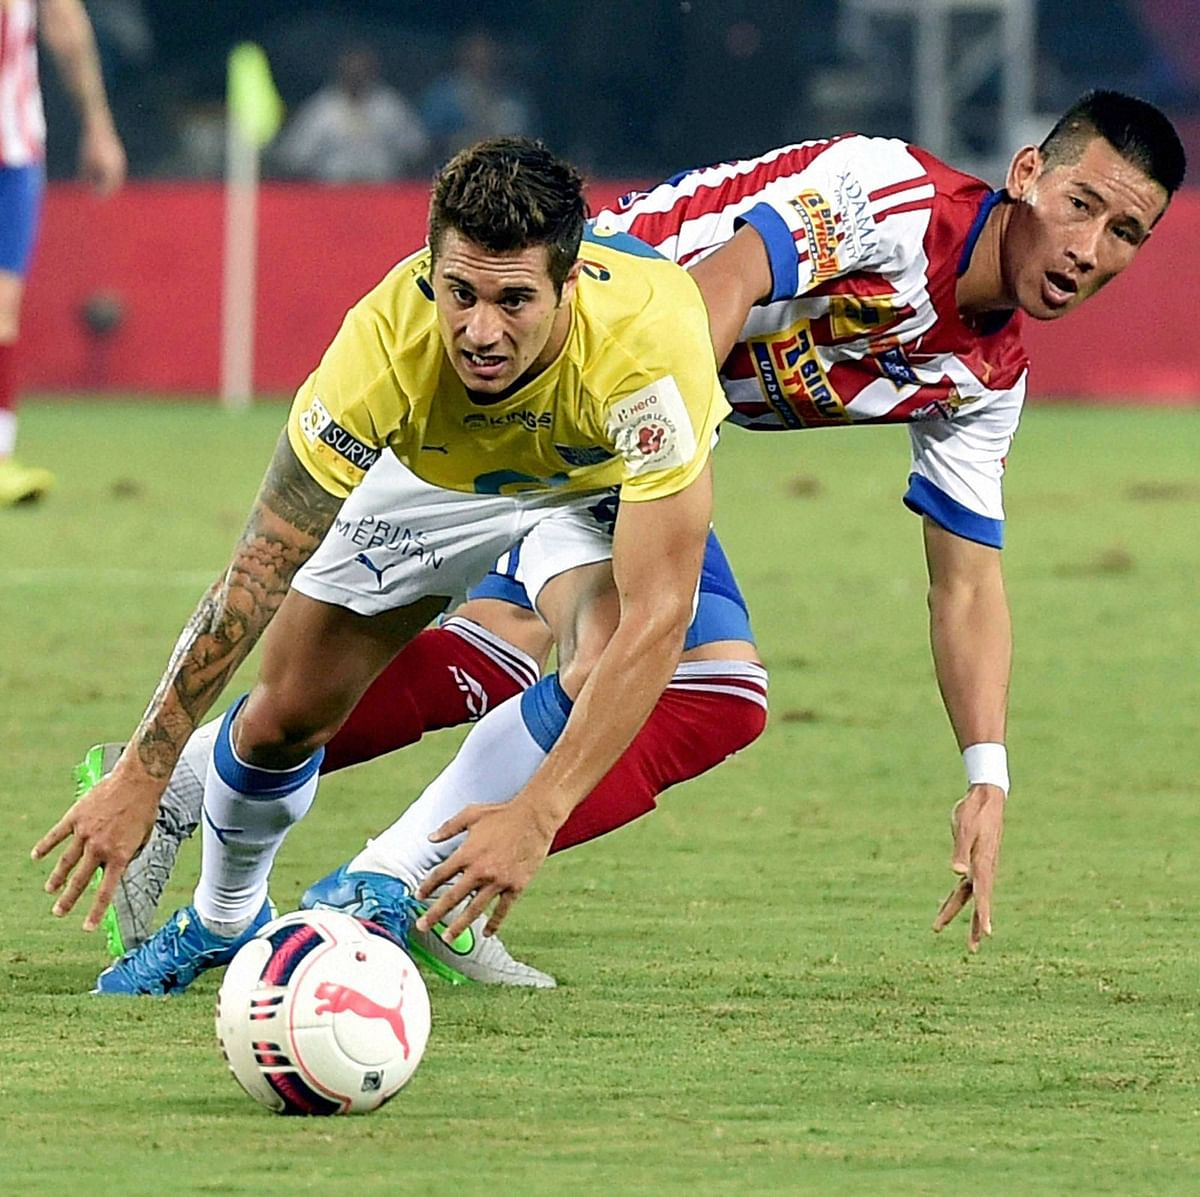 Atletico de Kolkata (red and white) and Kerala Blasters FC players in action during an ISL match in Kolkata. (Photo: PTI)